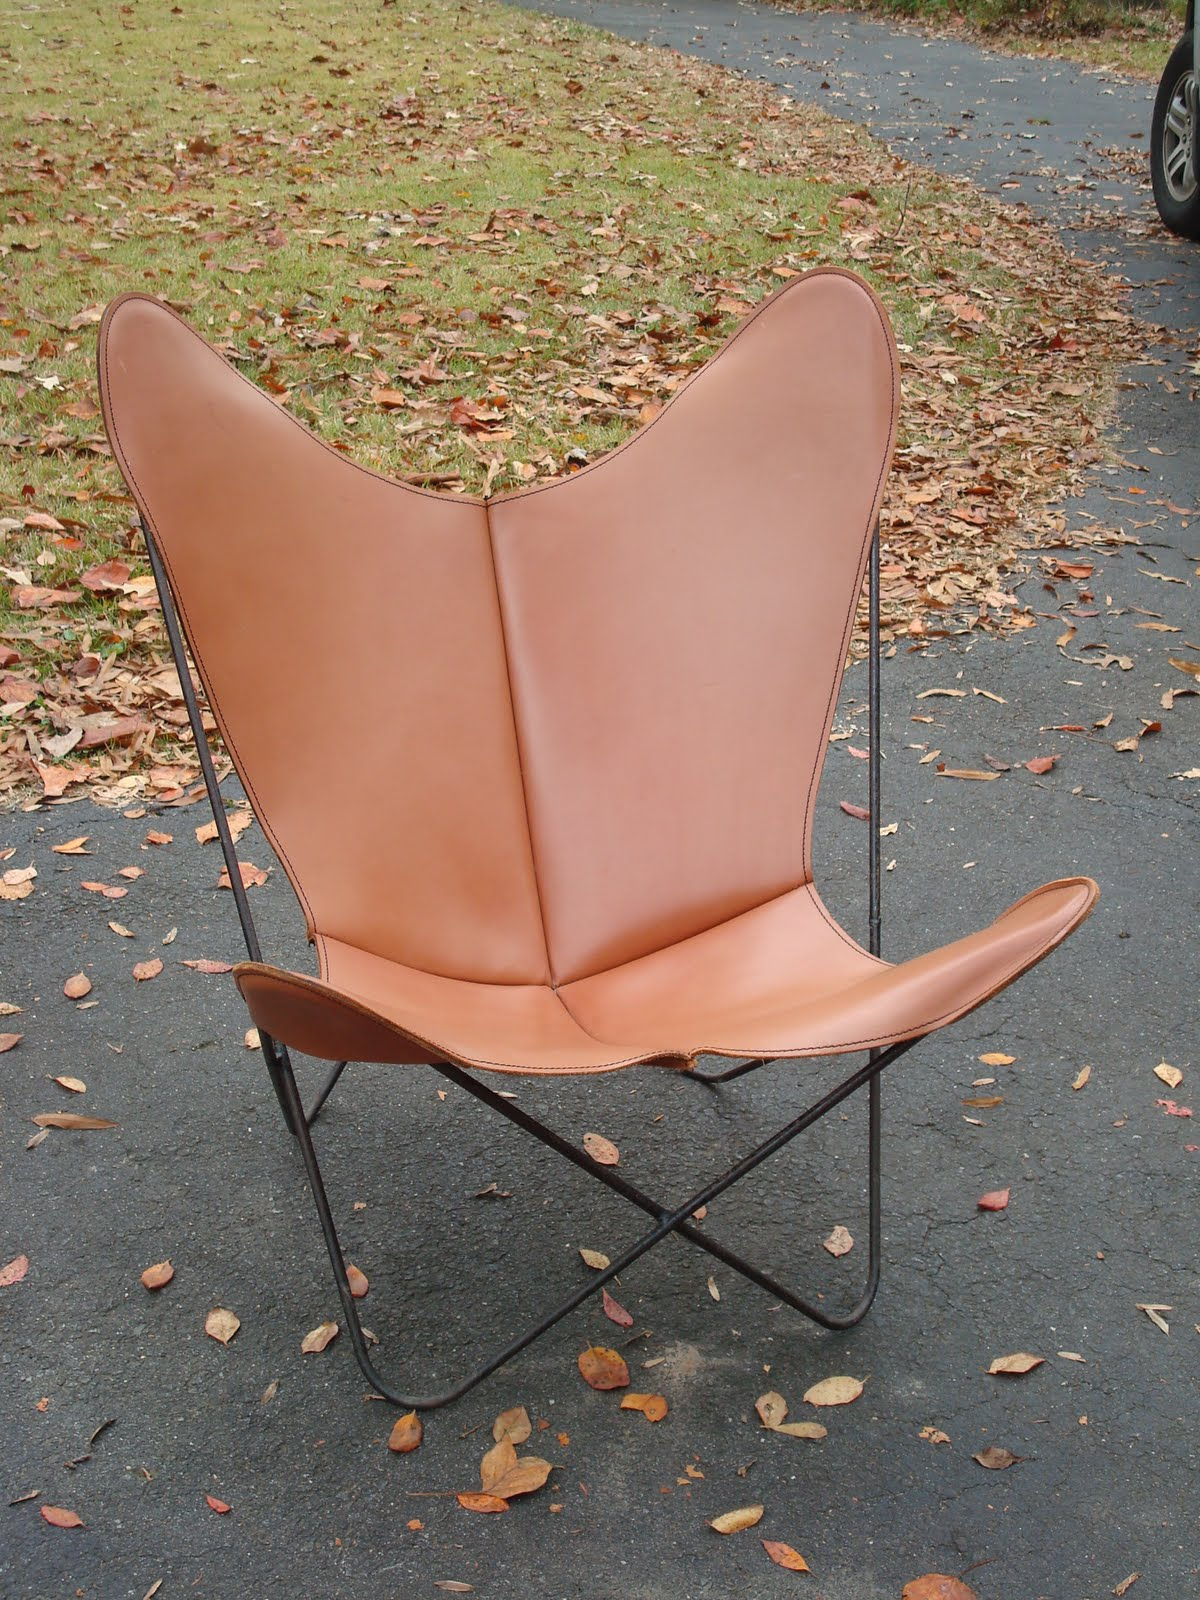 Vintage Butterfly Chair With Original Leather Cover